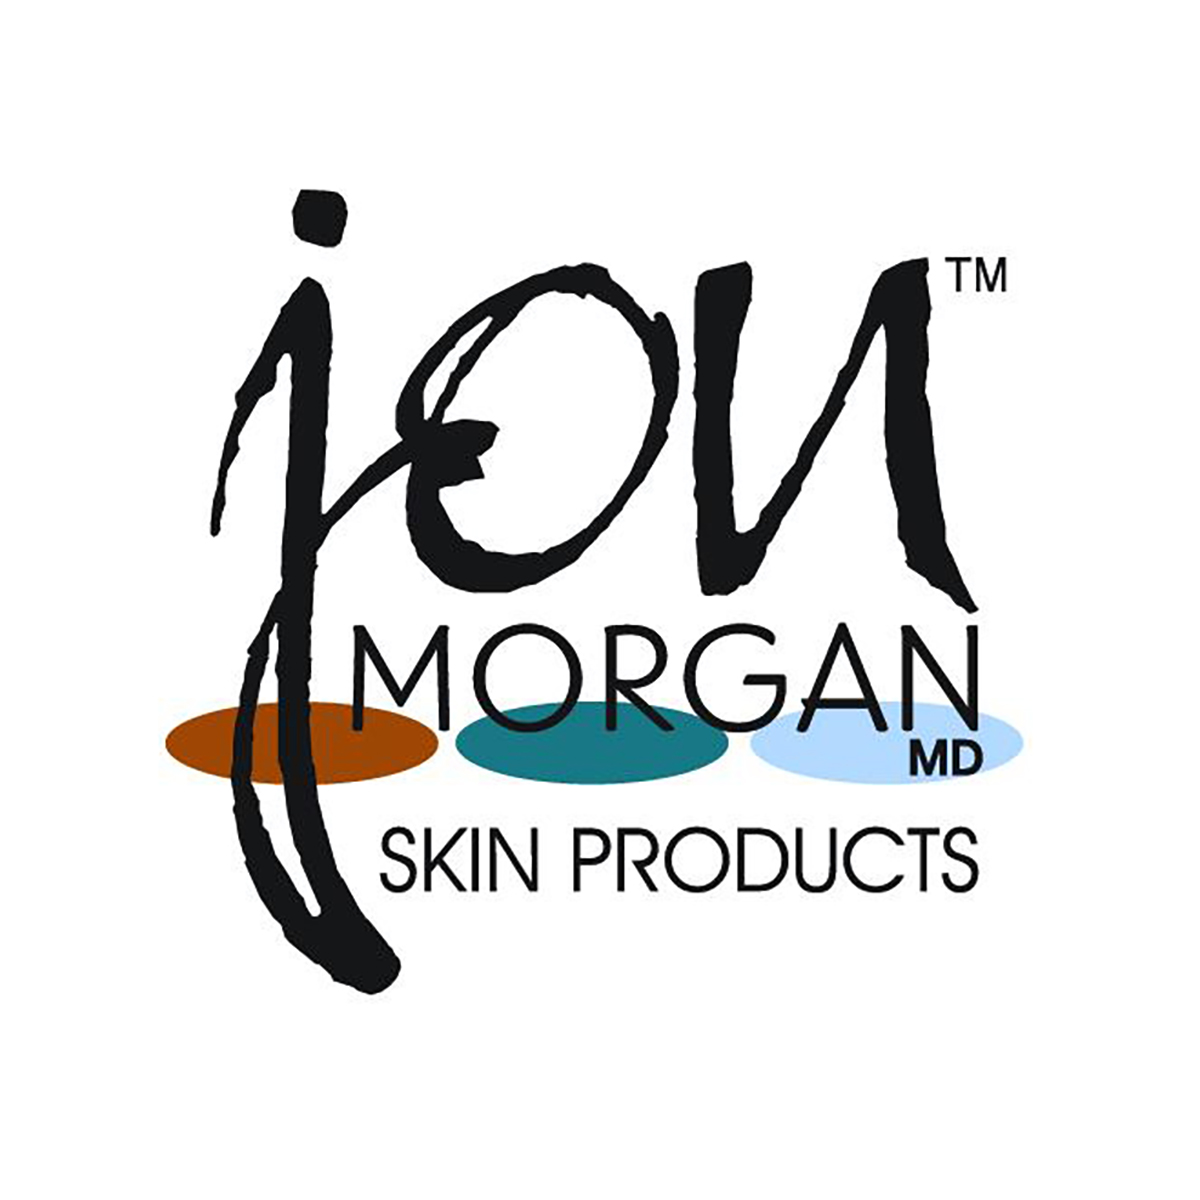 Jon Morgan, M.D. Skin Care Products